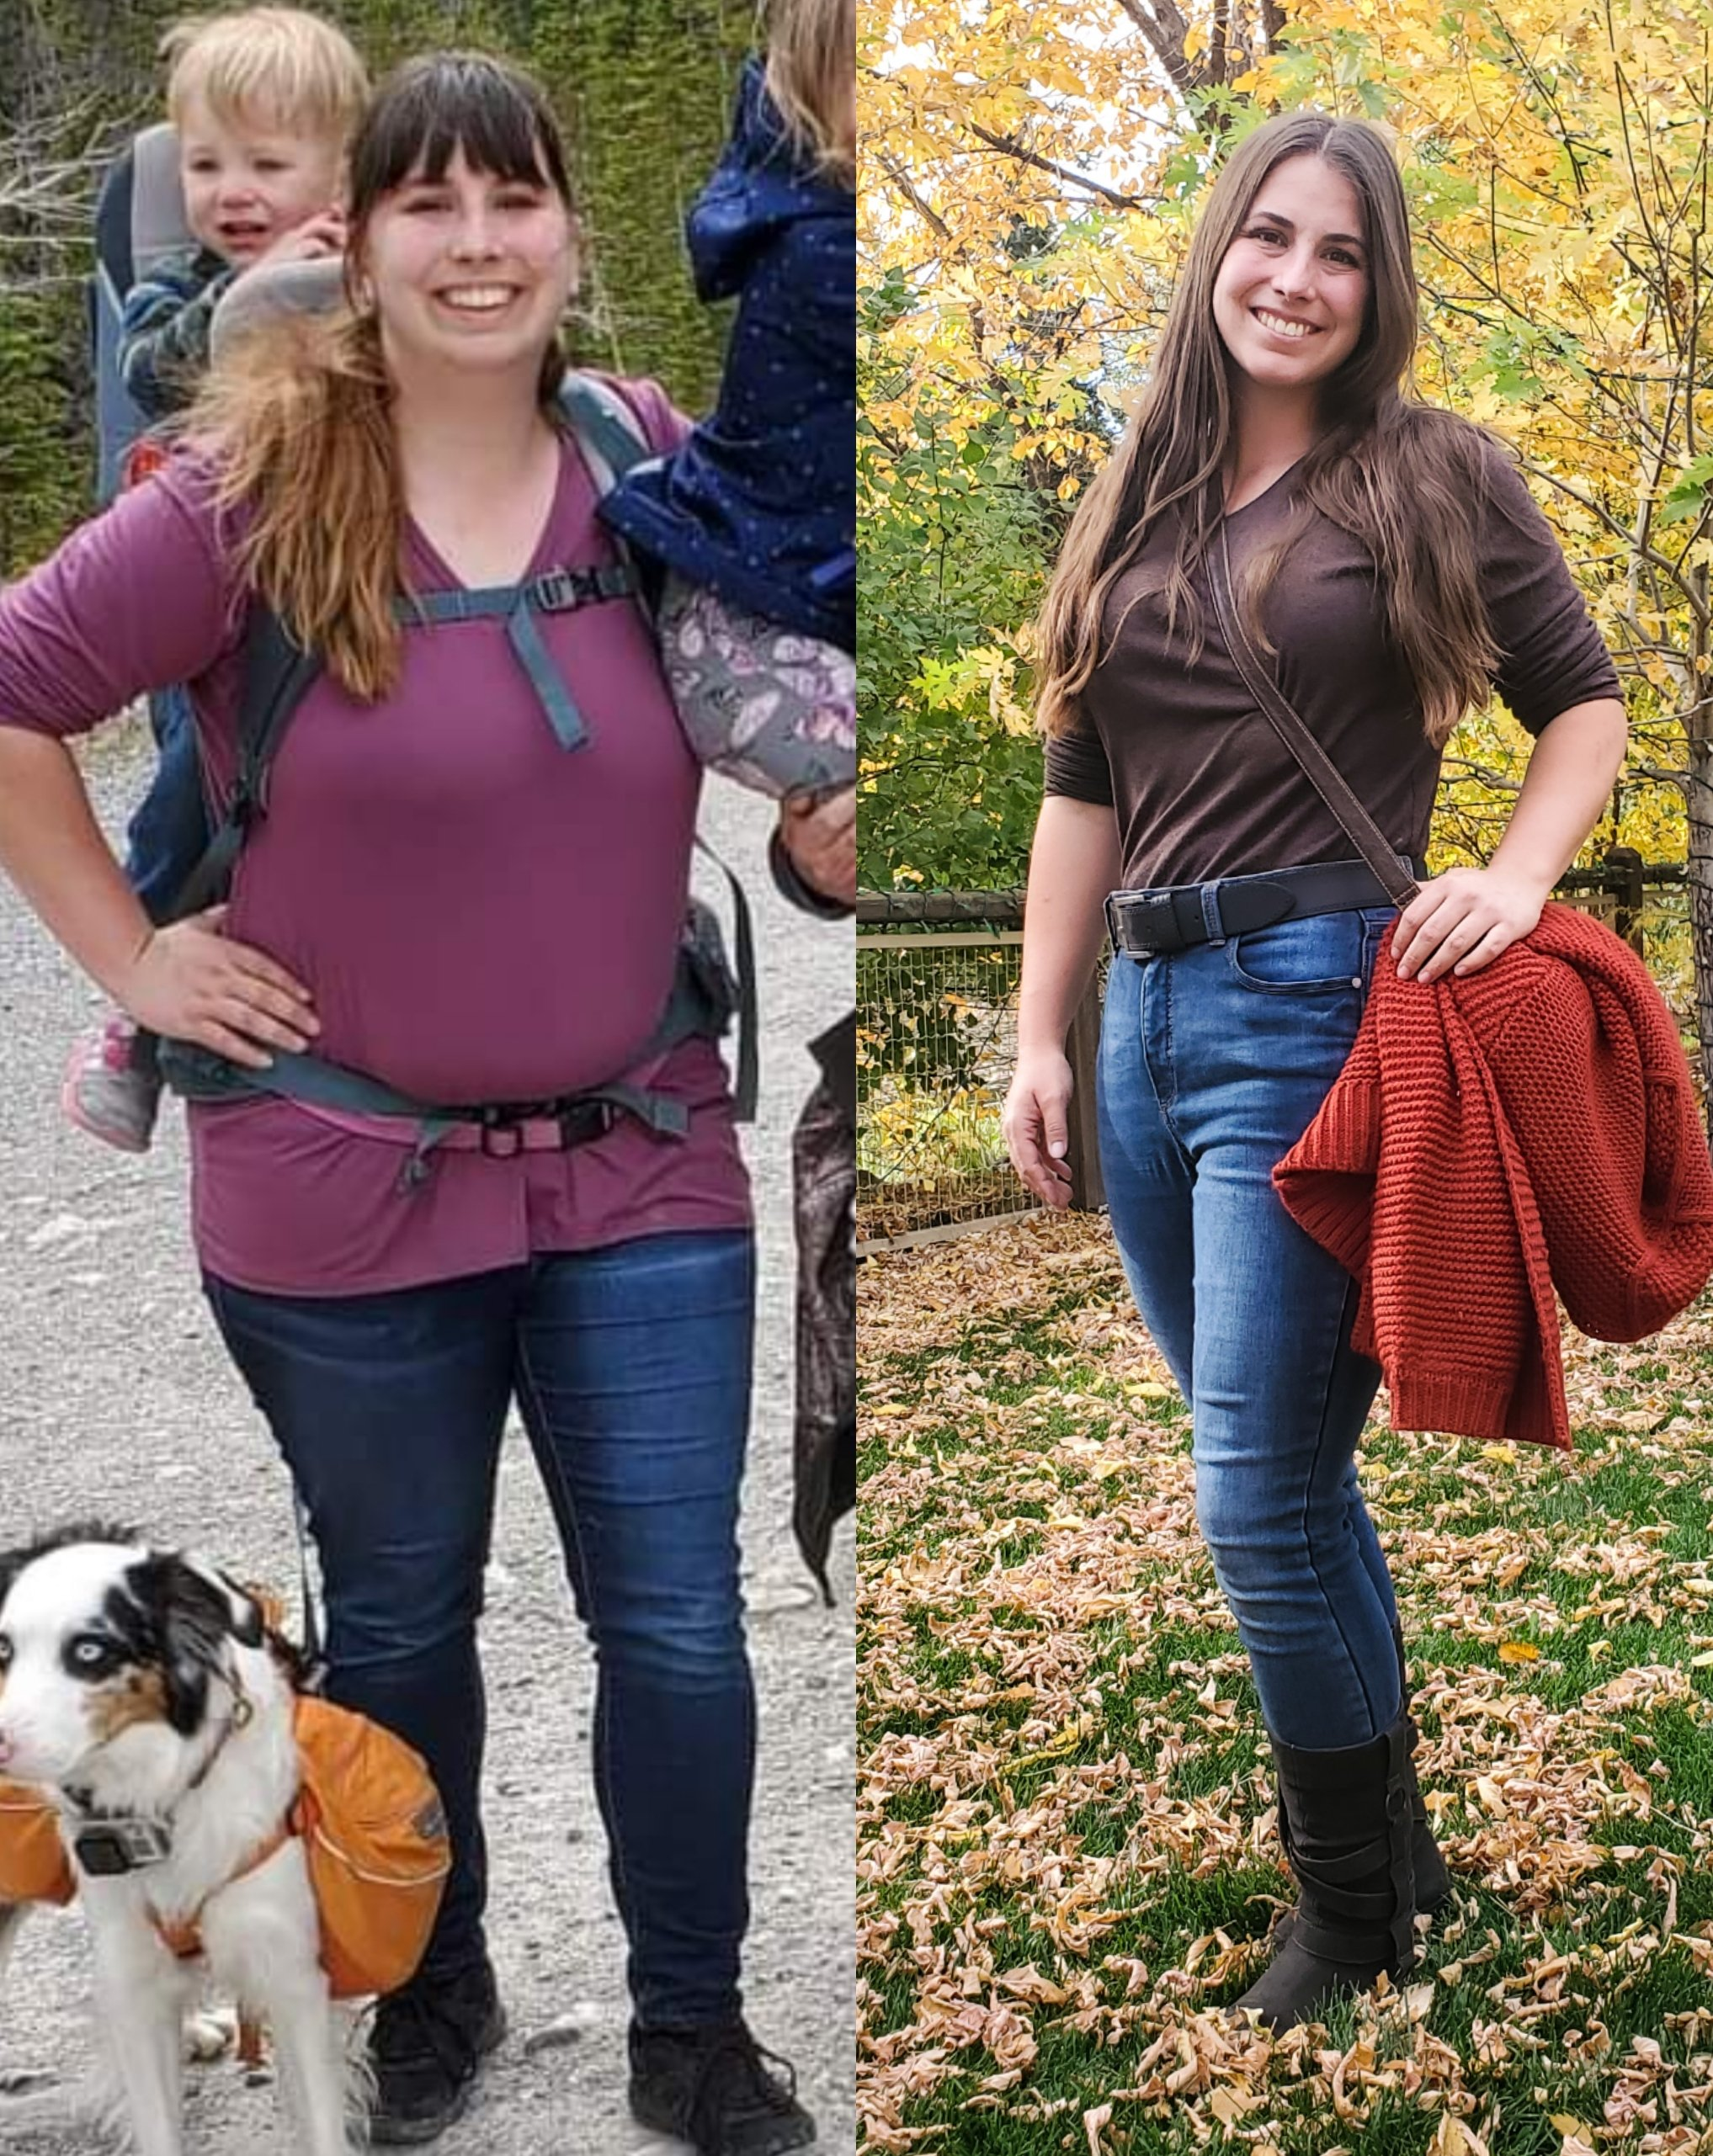 Before and After 86 lbs Weight Loss 5 foot 6 Female 255 lbs to 169 lbs